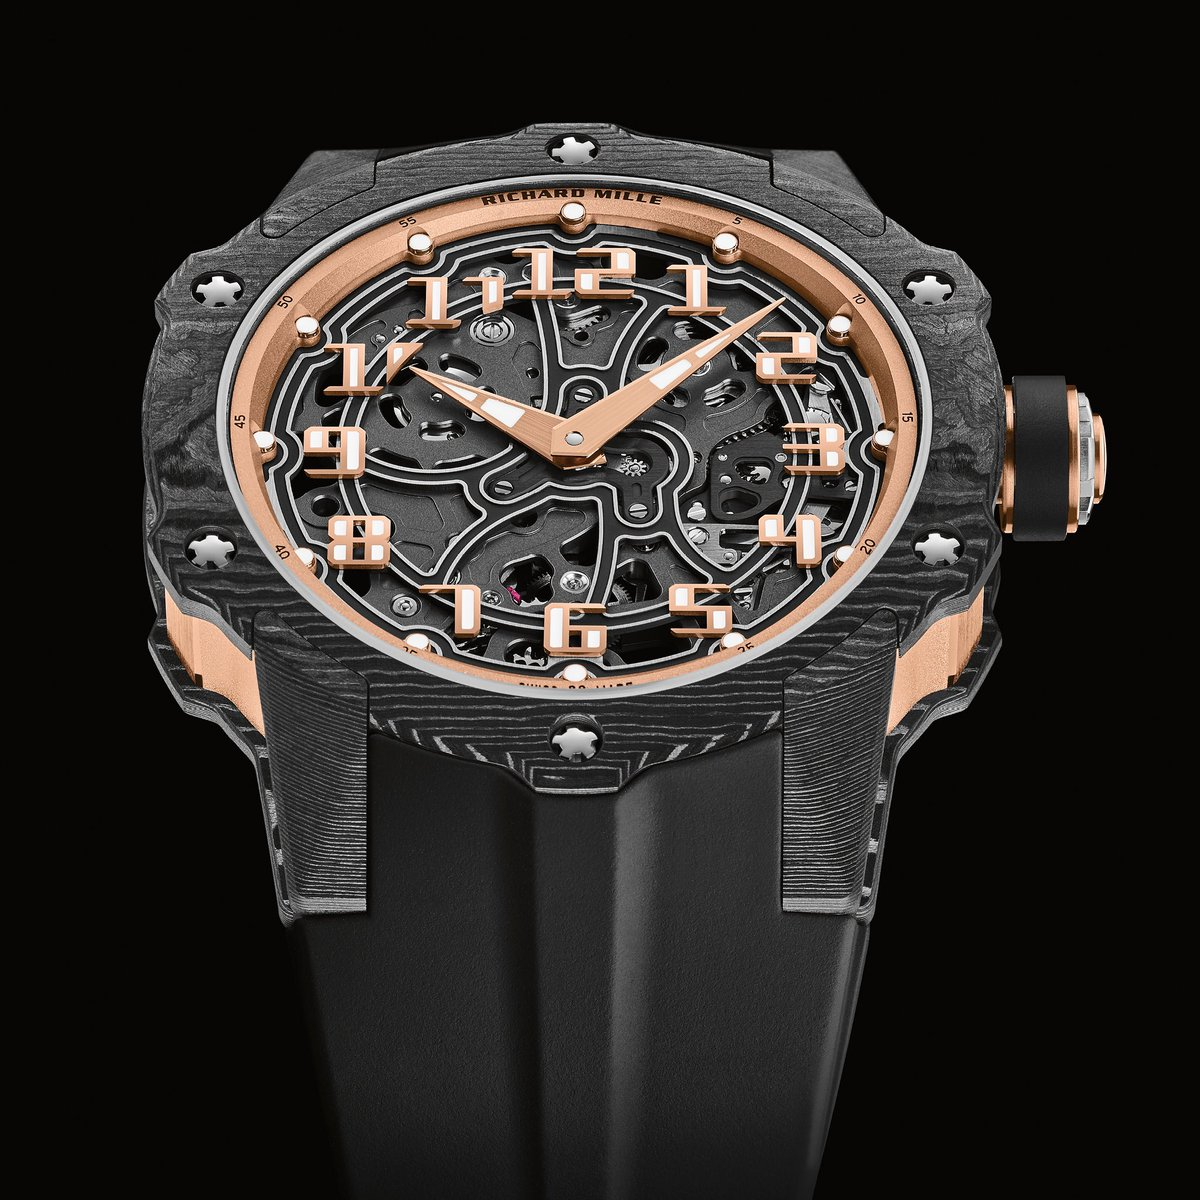 By marrying the performance of a sports watch with the elegance of a circular timepiece, Richard Mille has successfully merged two diametrically opposing characteristics into the new RM 33-02 Automatic.